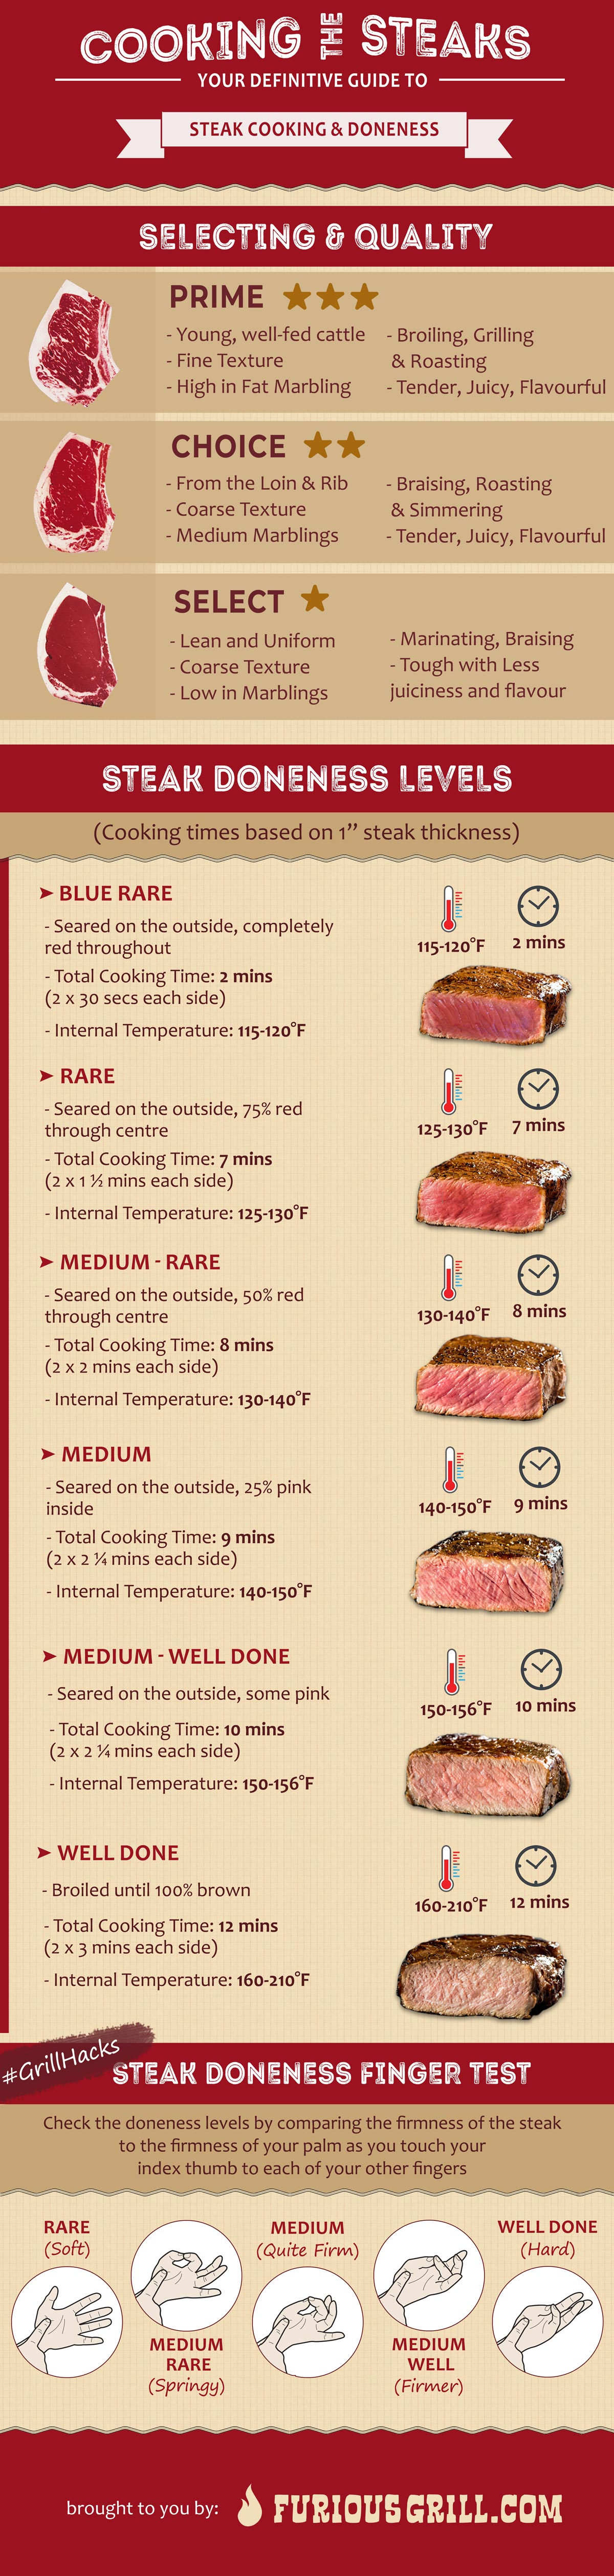 Steak Doneness Chart and Temperature Tables